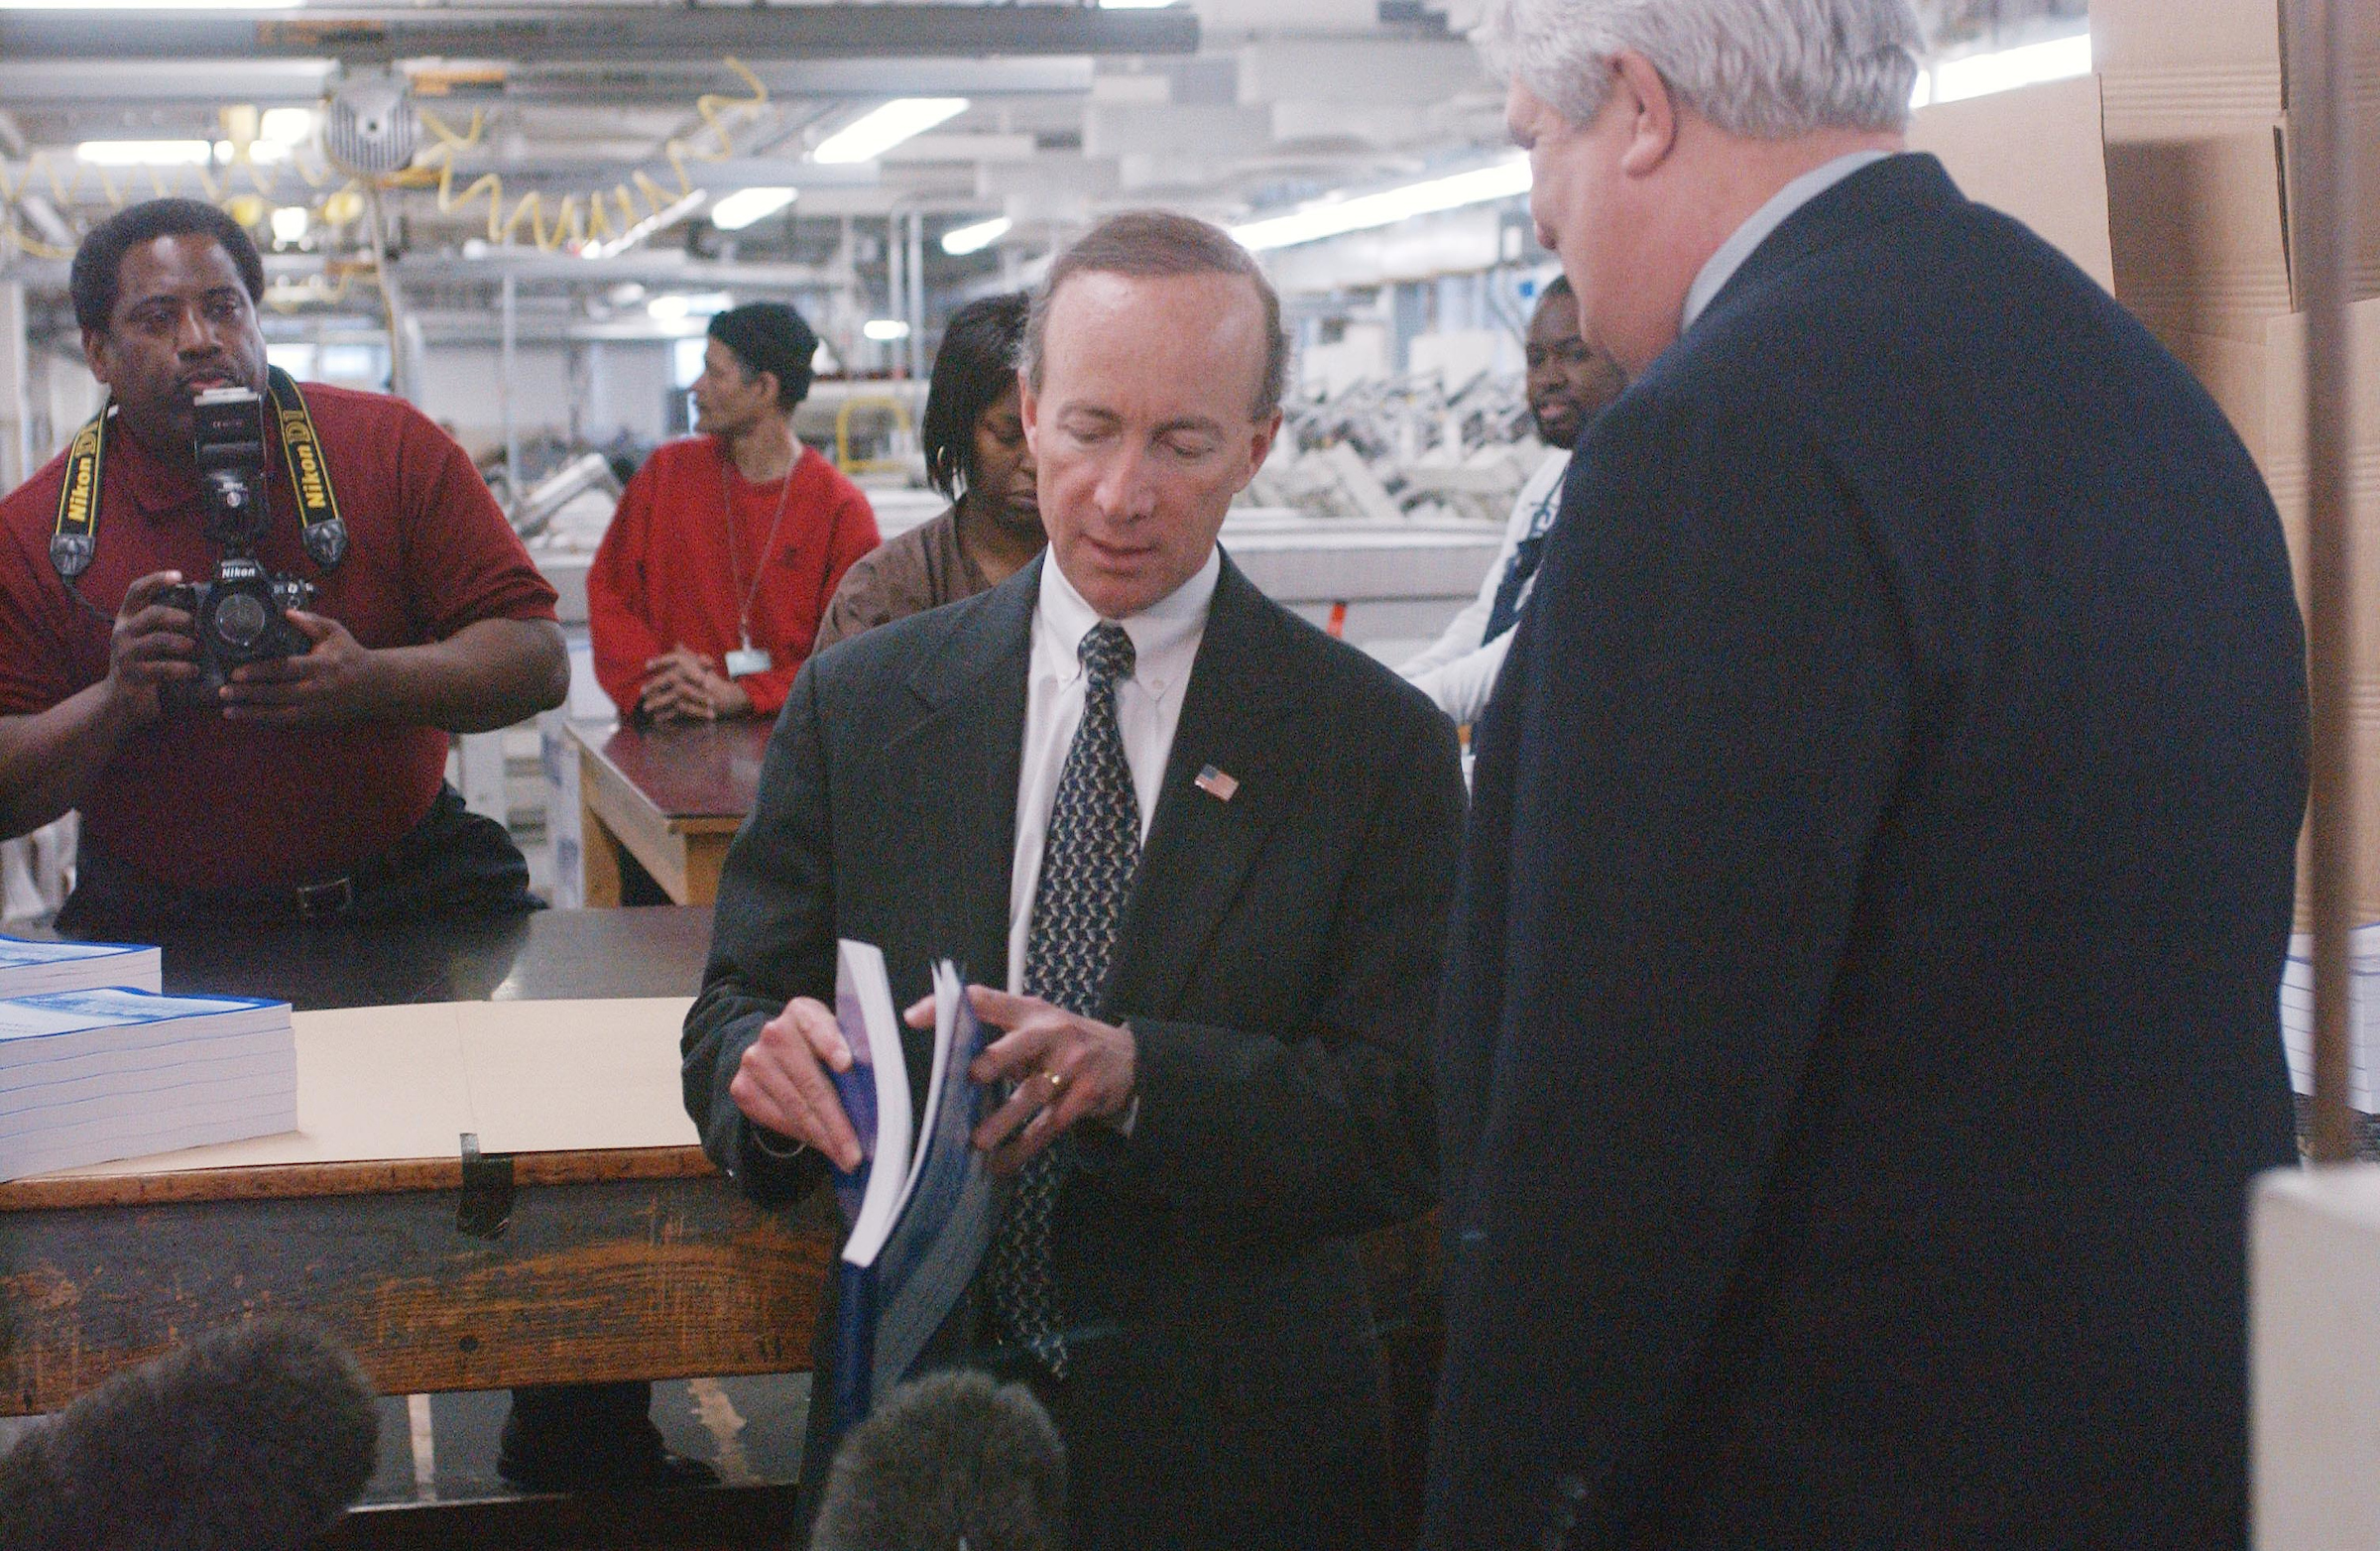 Office of Management and Budget Director Mitchell E. Daniels Jr., and Public Printer of the United States Bruce R. James during a photo opp as copies of the Bush administration's Fiscal 2004 federal budget come off the binder at the U.S. Government Printing Office in Washington, D.C. (Scott Ferrell/CQ Roll Call file photo.)